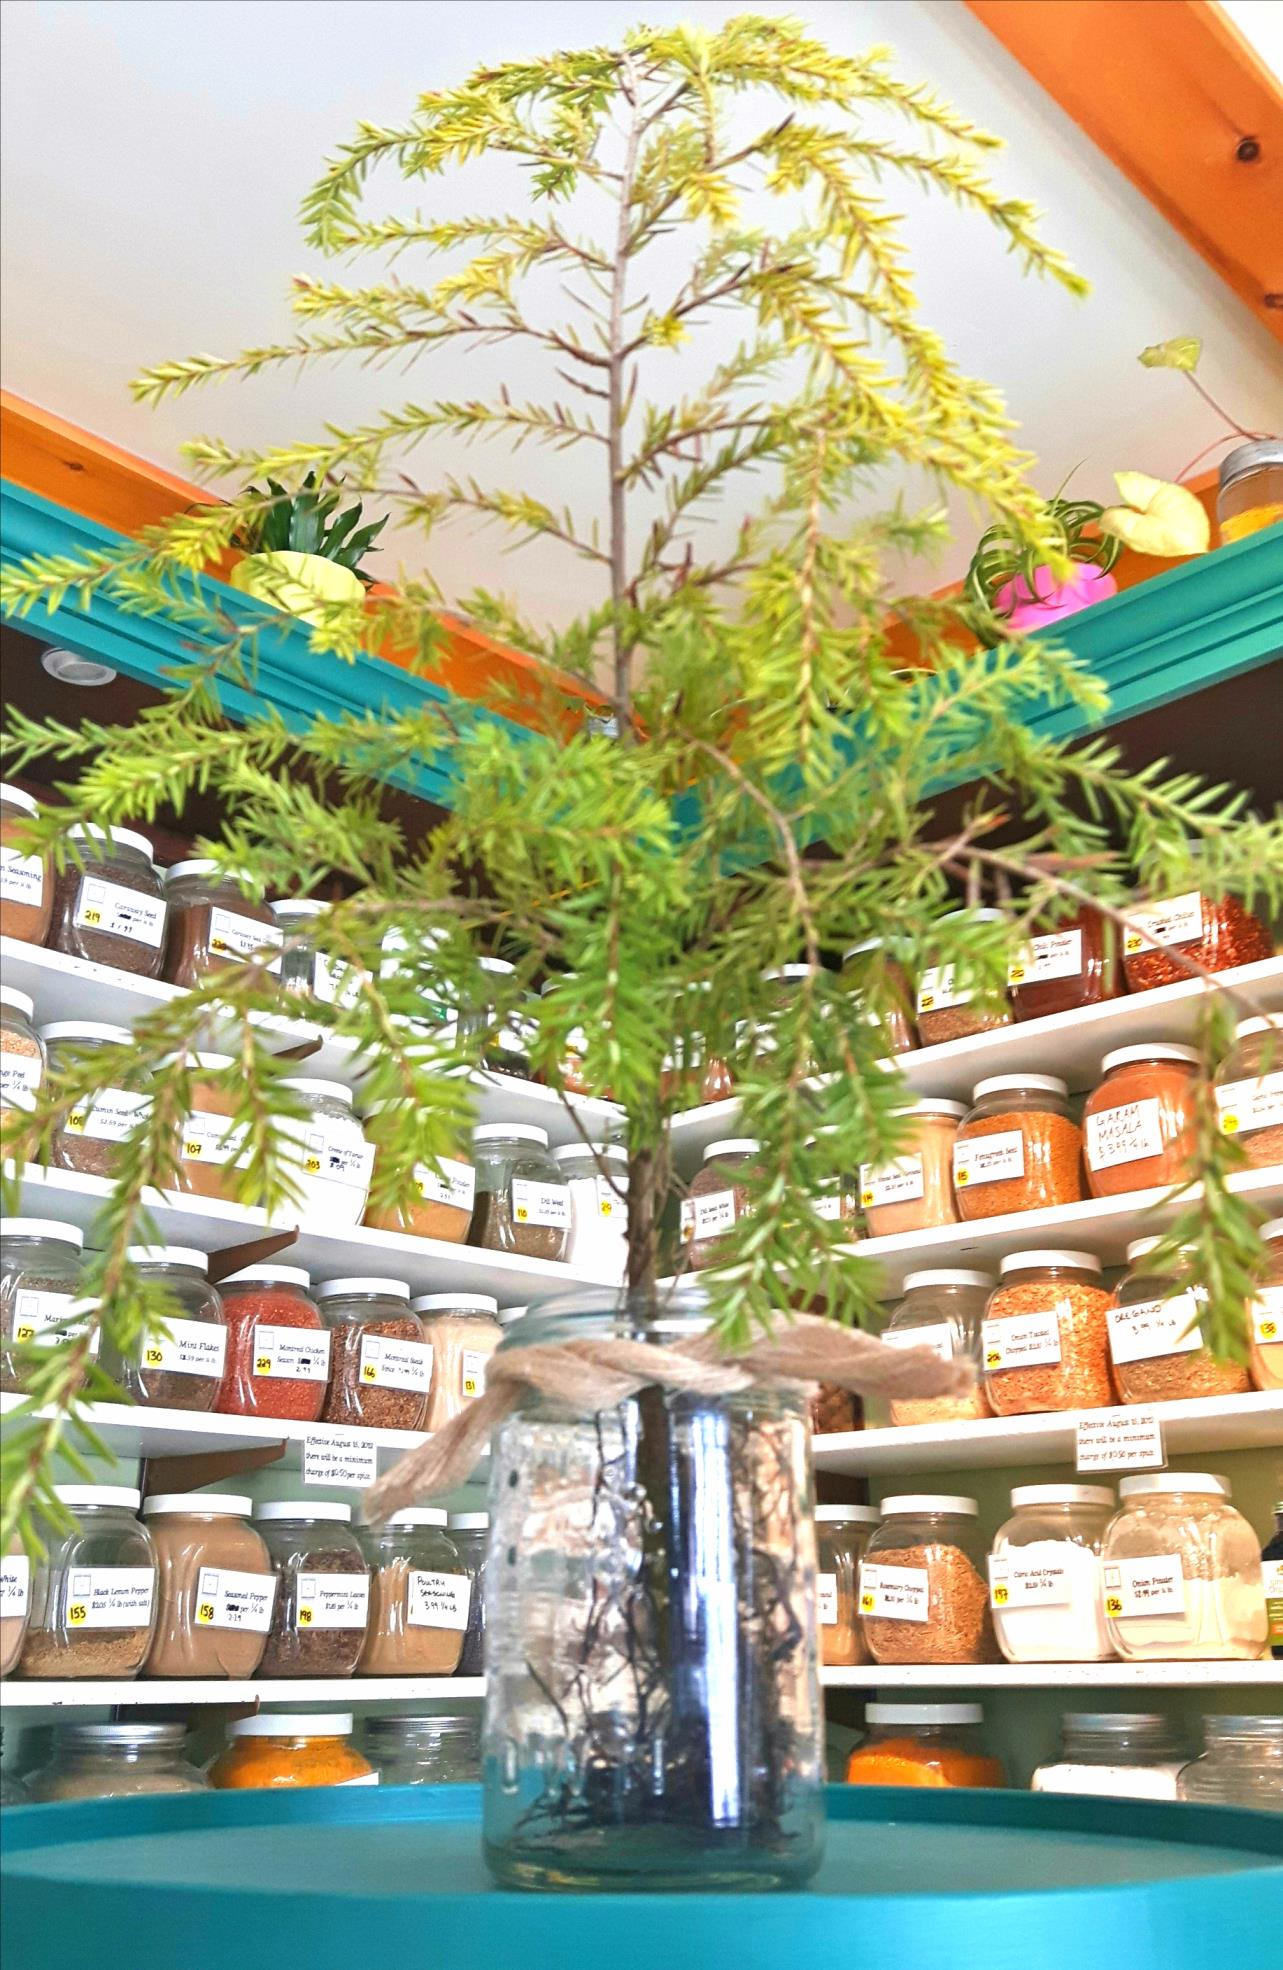 Free tree seedling from Country Cupboard for first 100 people